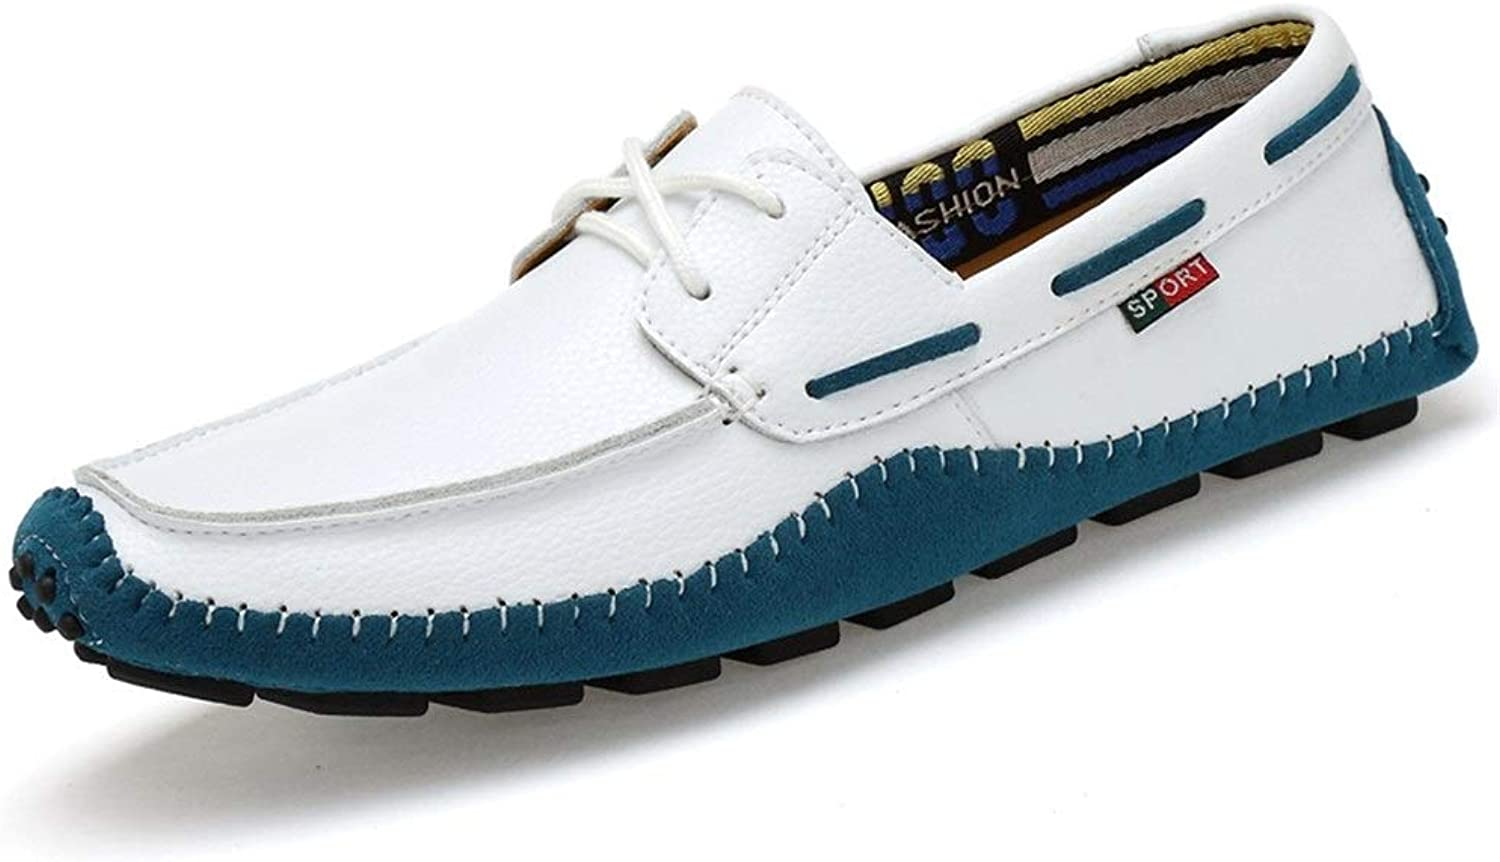 DorisAA-MS Men Leather Loafer shoes Oxfords Leather Driving Loafers Round Toe Flat Penny shoes Upper Lace Up Walking Boat shoes Loafer shoes (color   White, Size   9.5 UK)